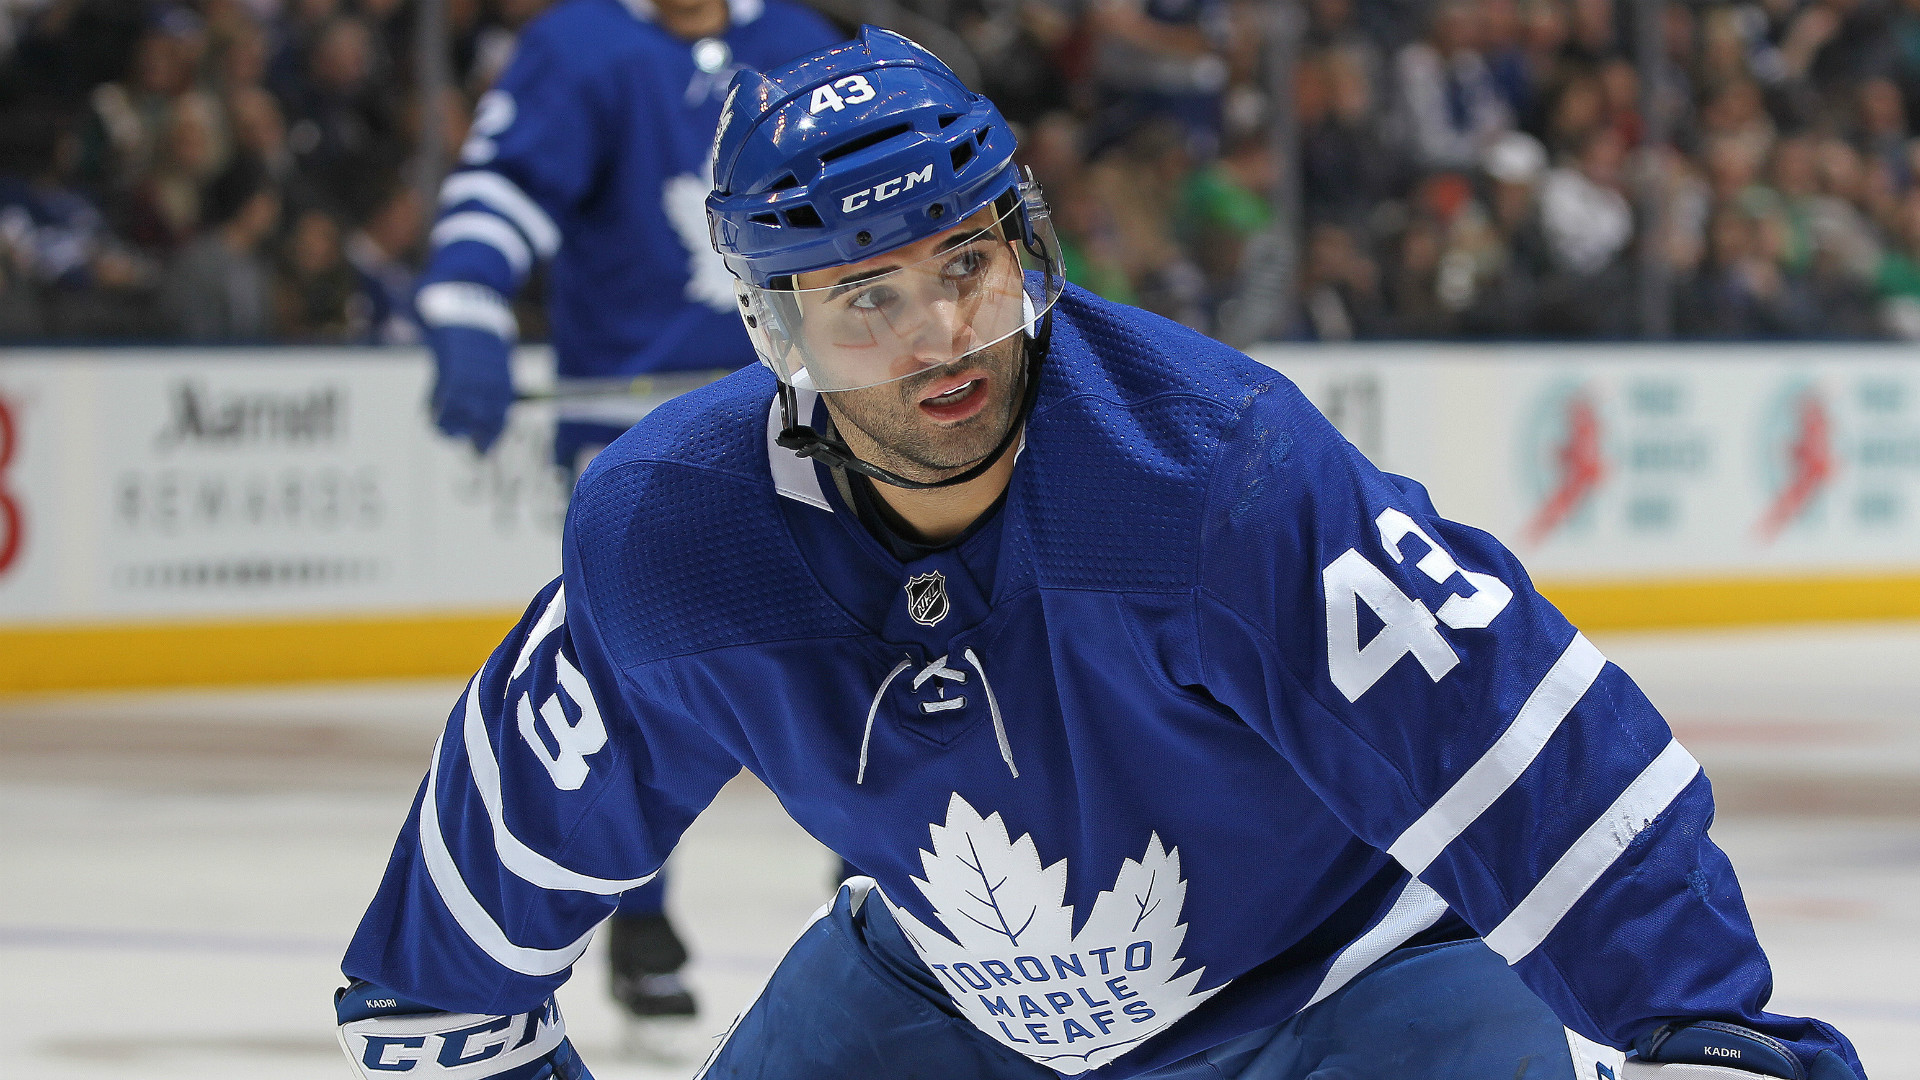 Leafs' Kadri suspended 3 games for hit on Bruins' Wingels